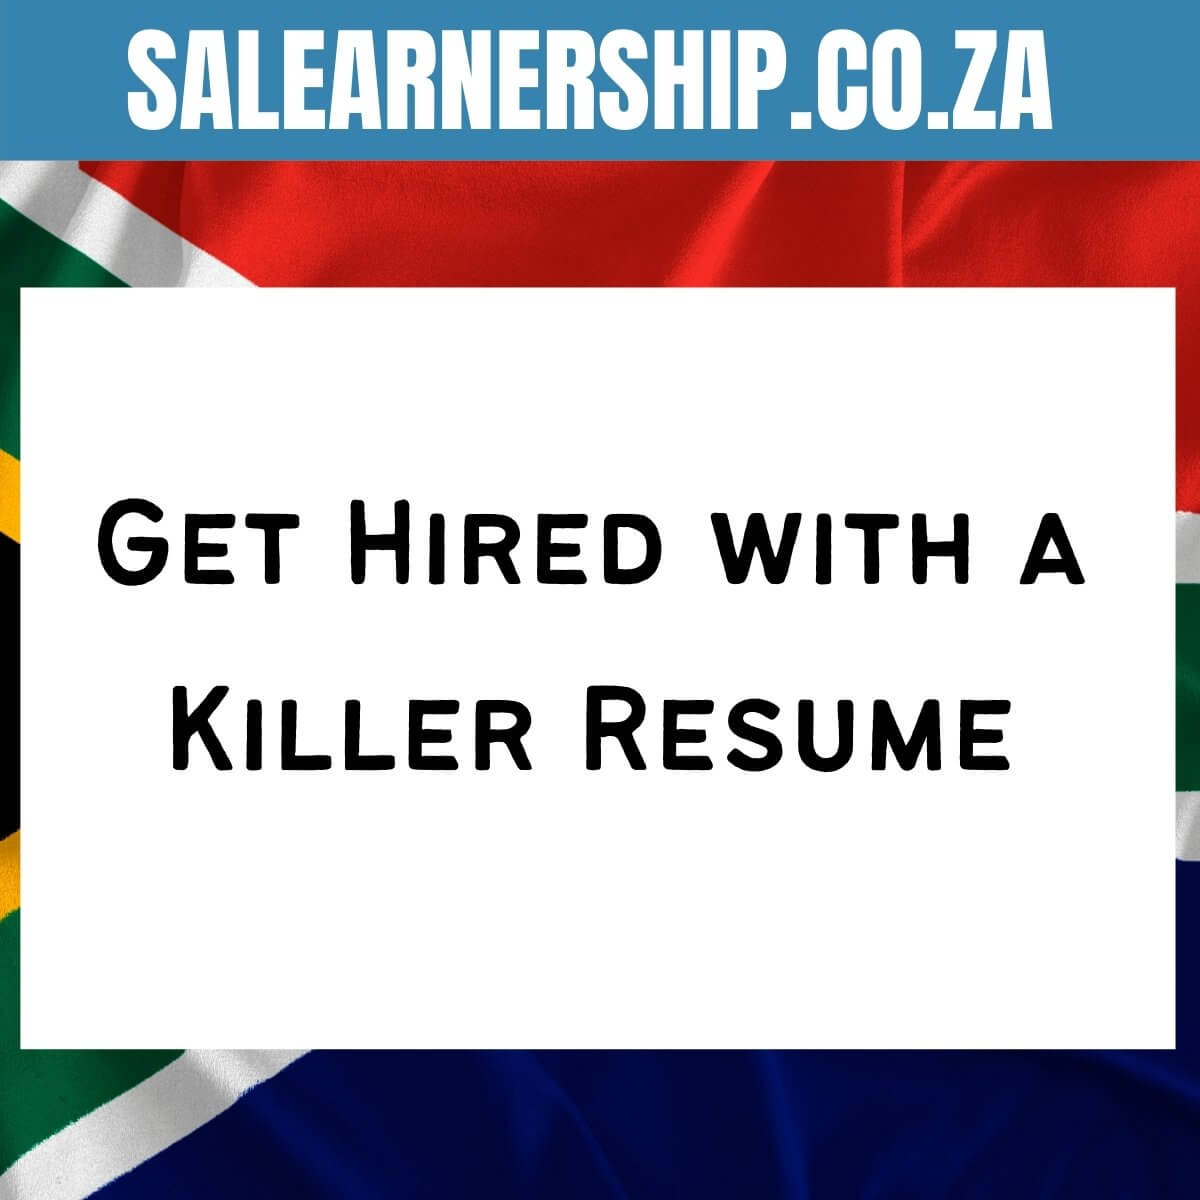 Get Hired with a Killer Resume